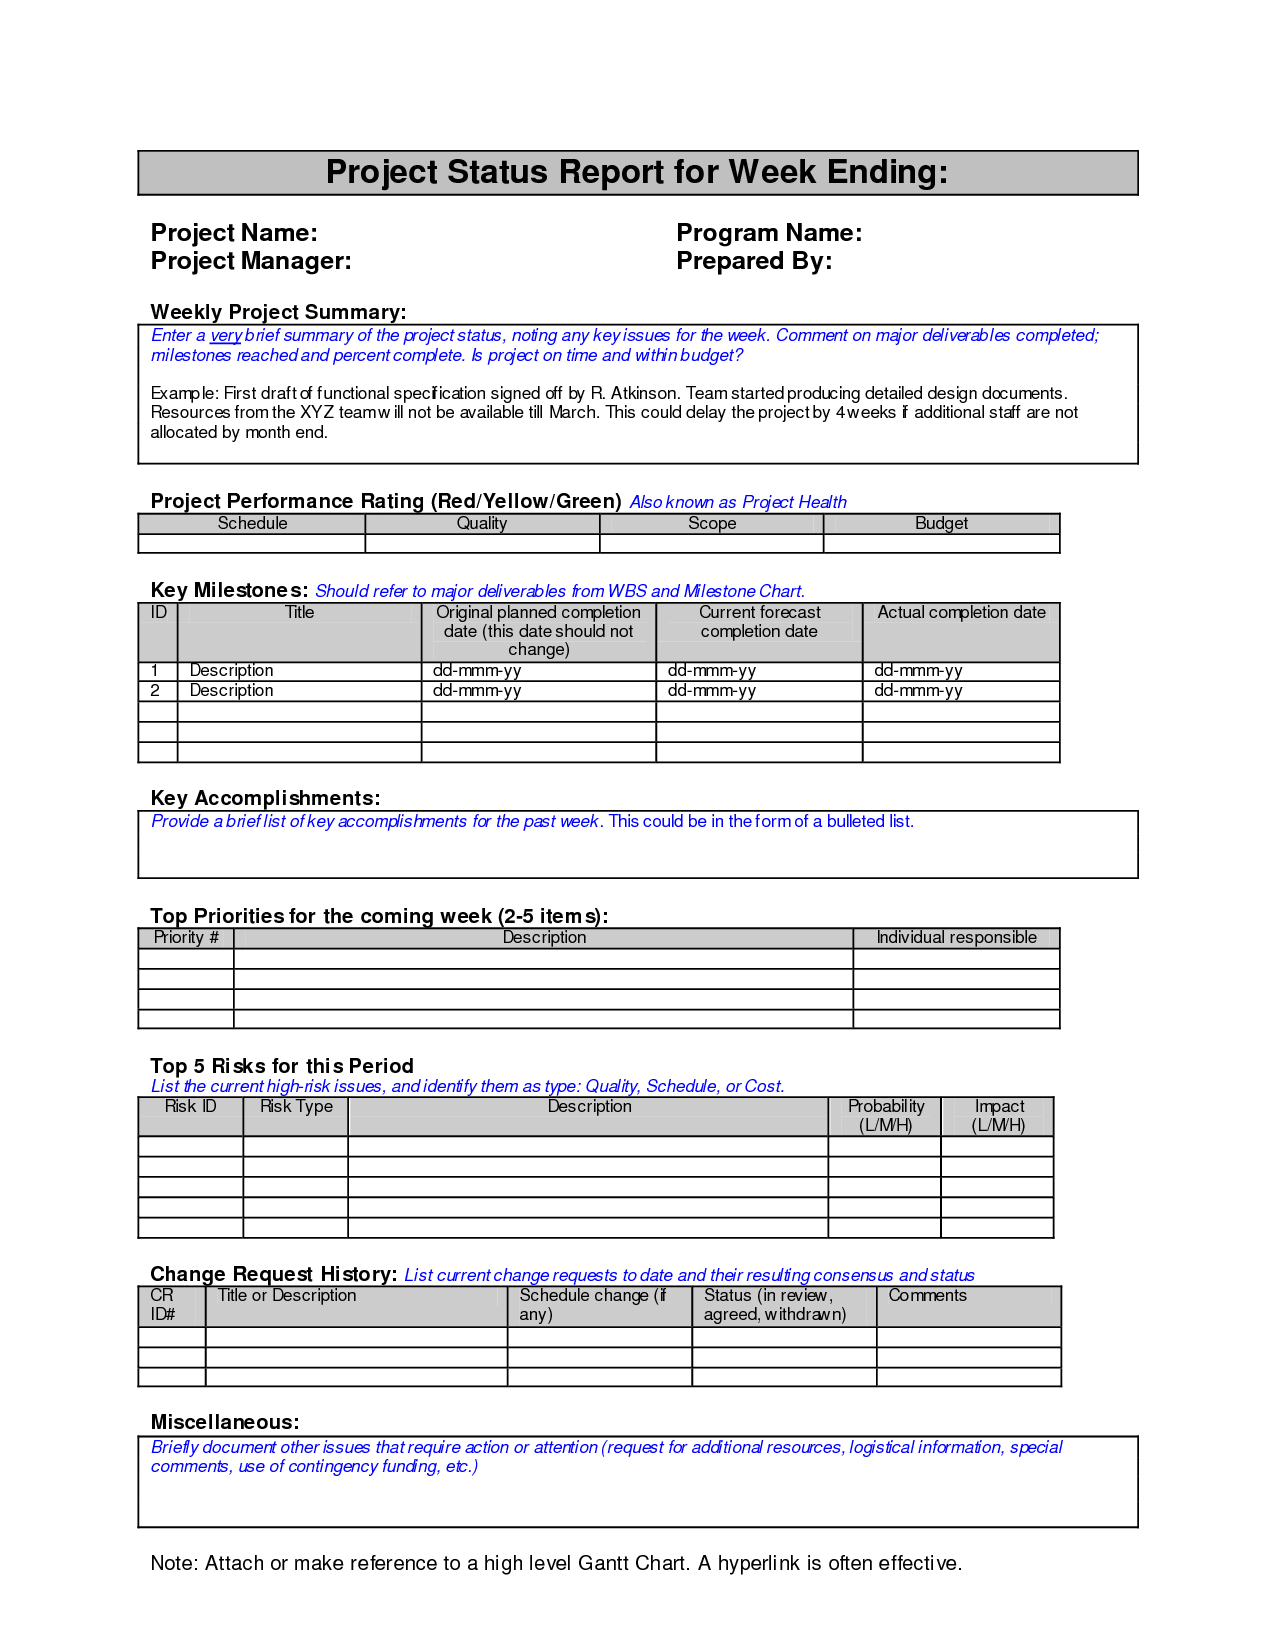 end of project report template - weekly project status report sample google search work